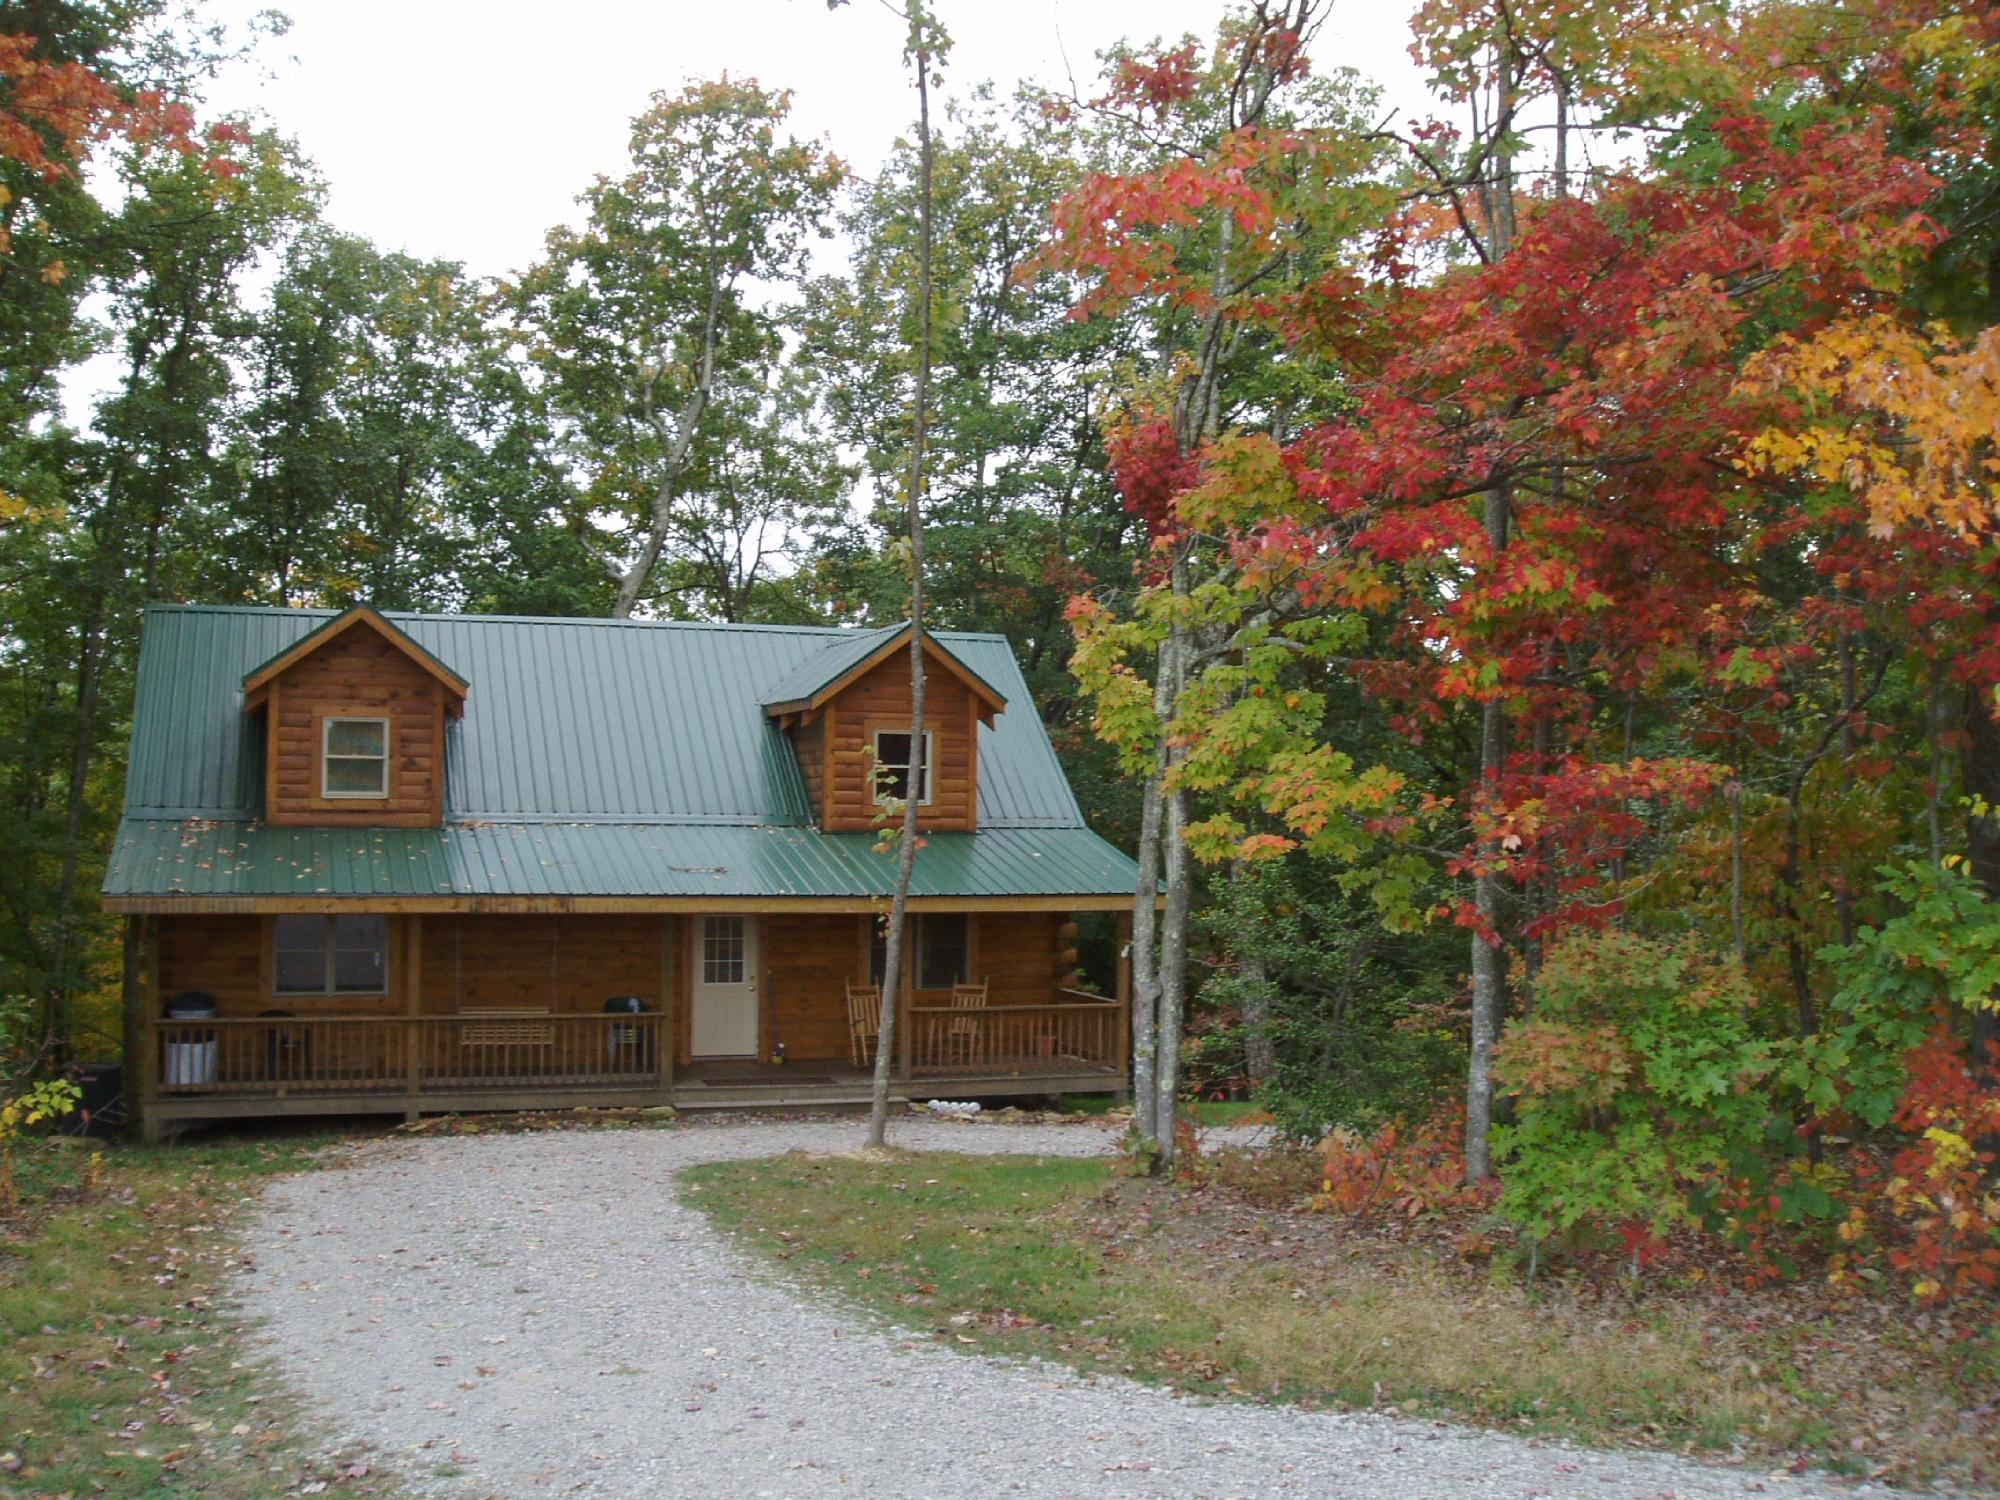 Country Road Cabins Updated 2017 Reviews Photos Price